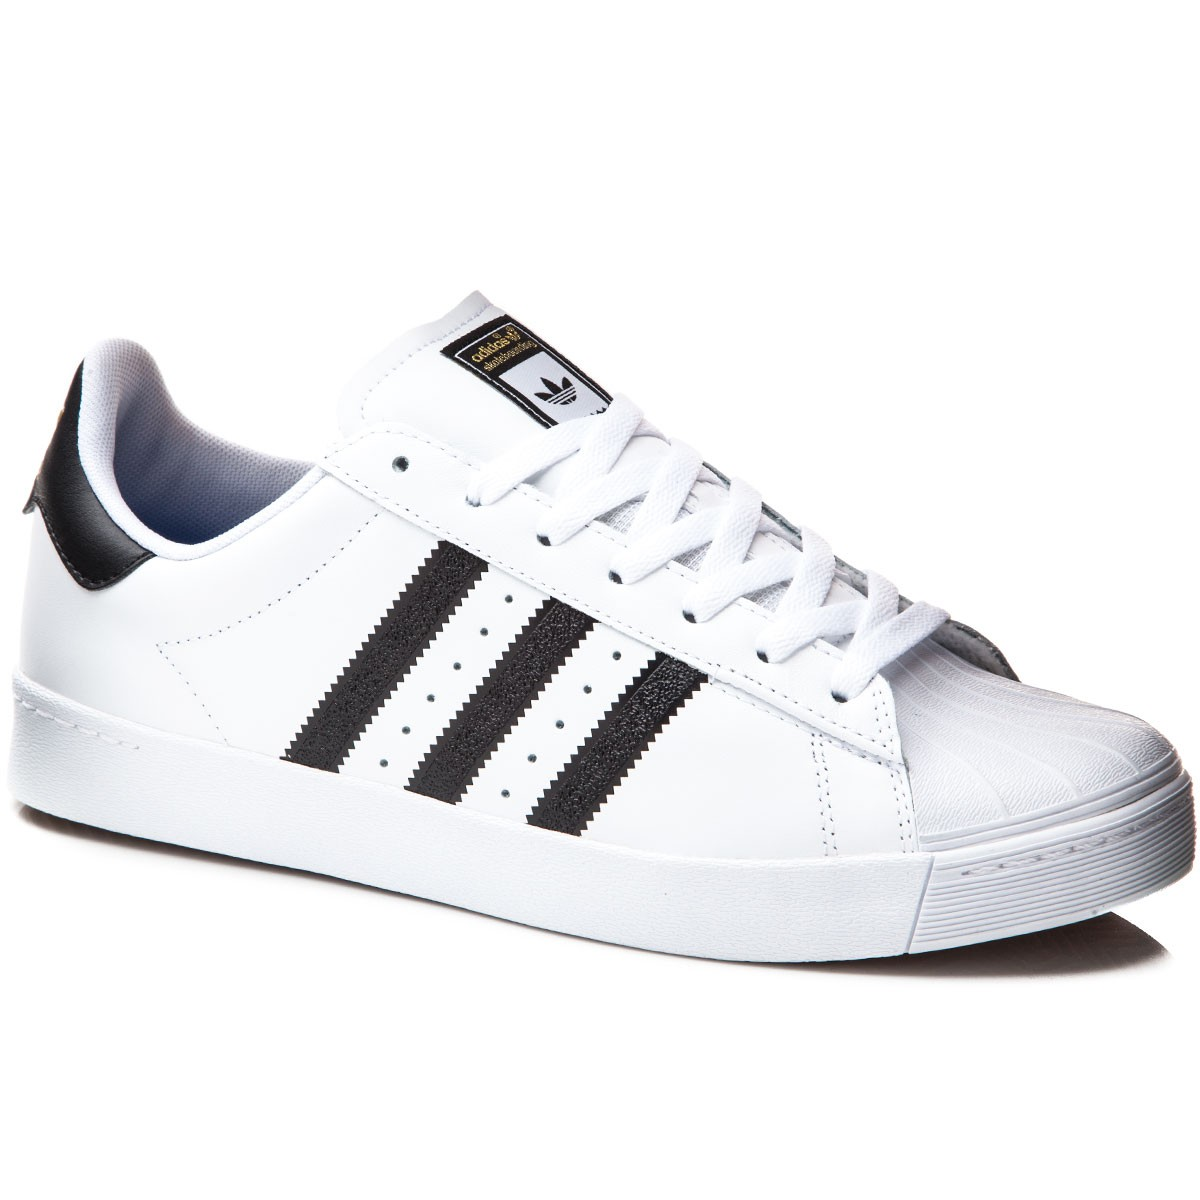 Cheap Adidas superstar adv Tight budget Pleasers